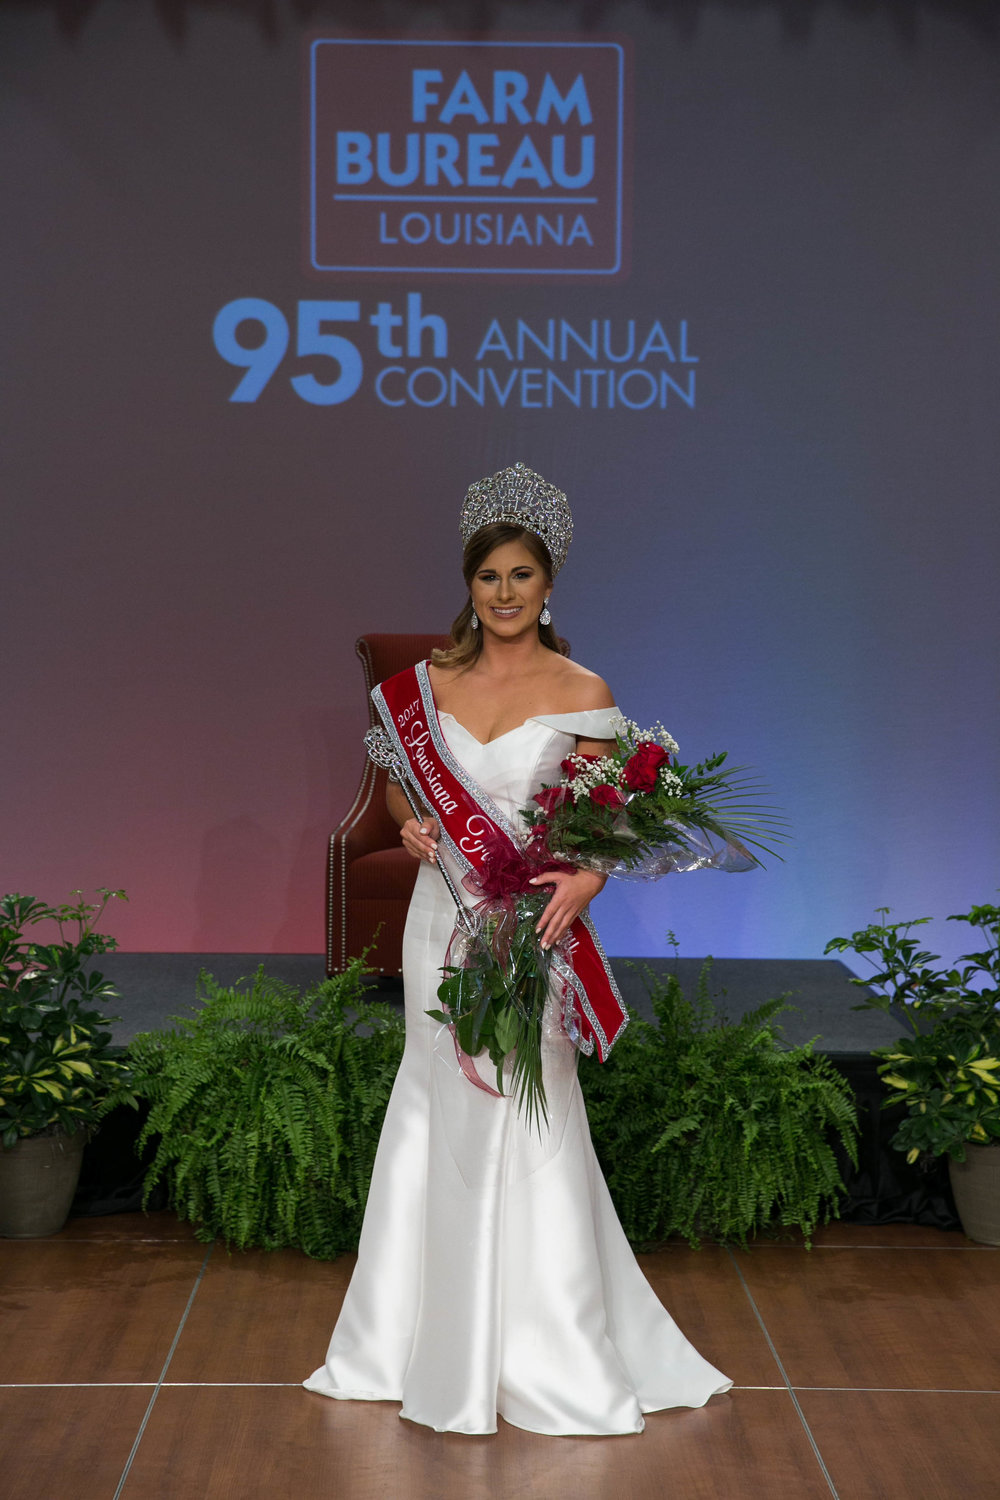 Sloane Judice, 16, of Iberia parish was crowned the 2017 Louisiana Farm Bureau Queen Saturday night during the organization's 95th annual convention.